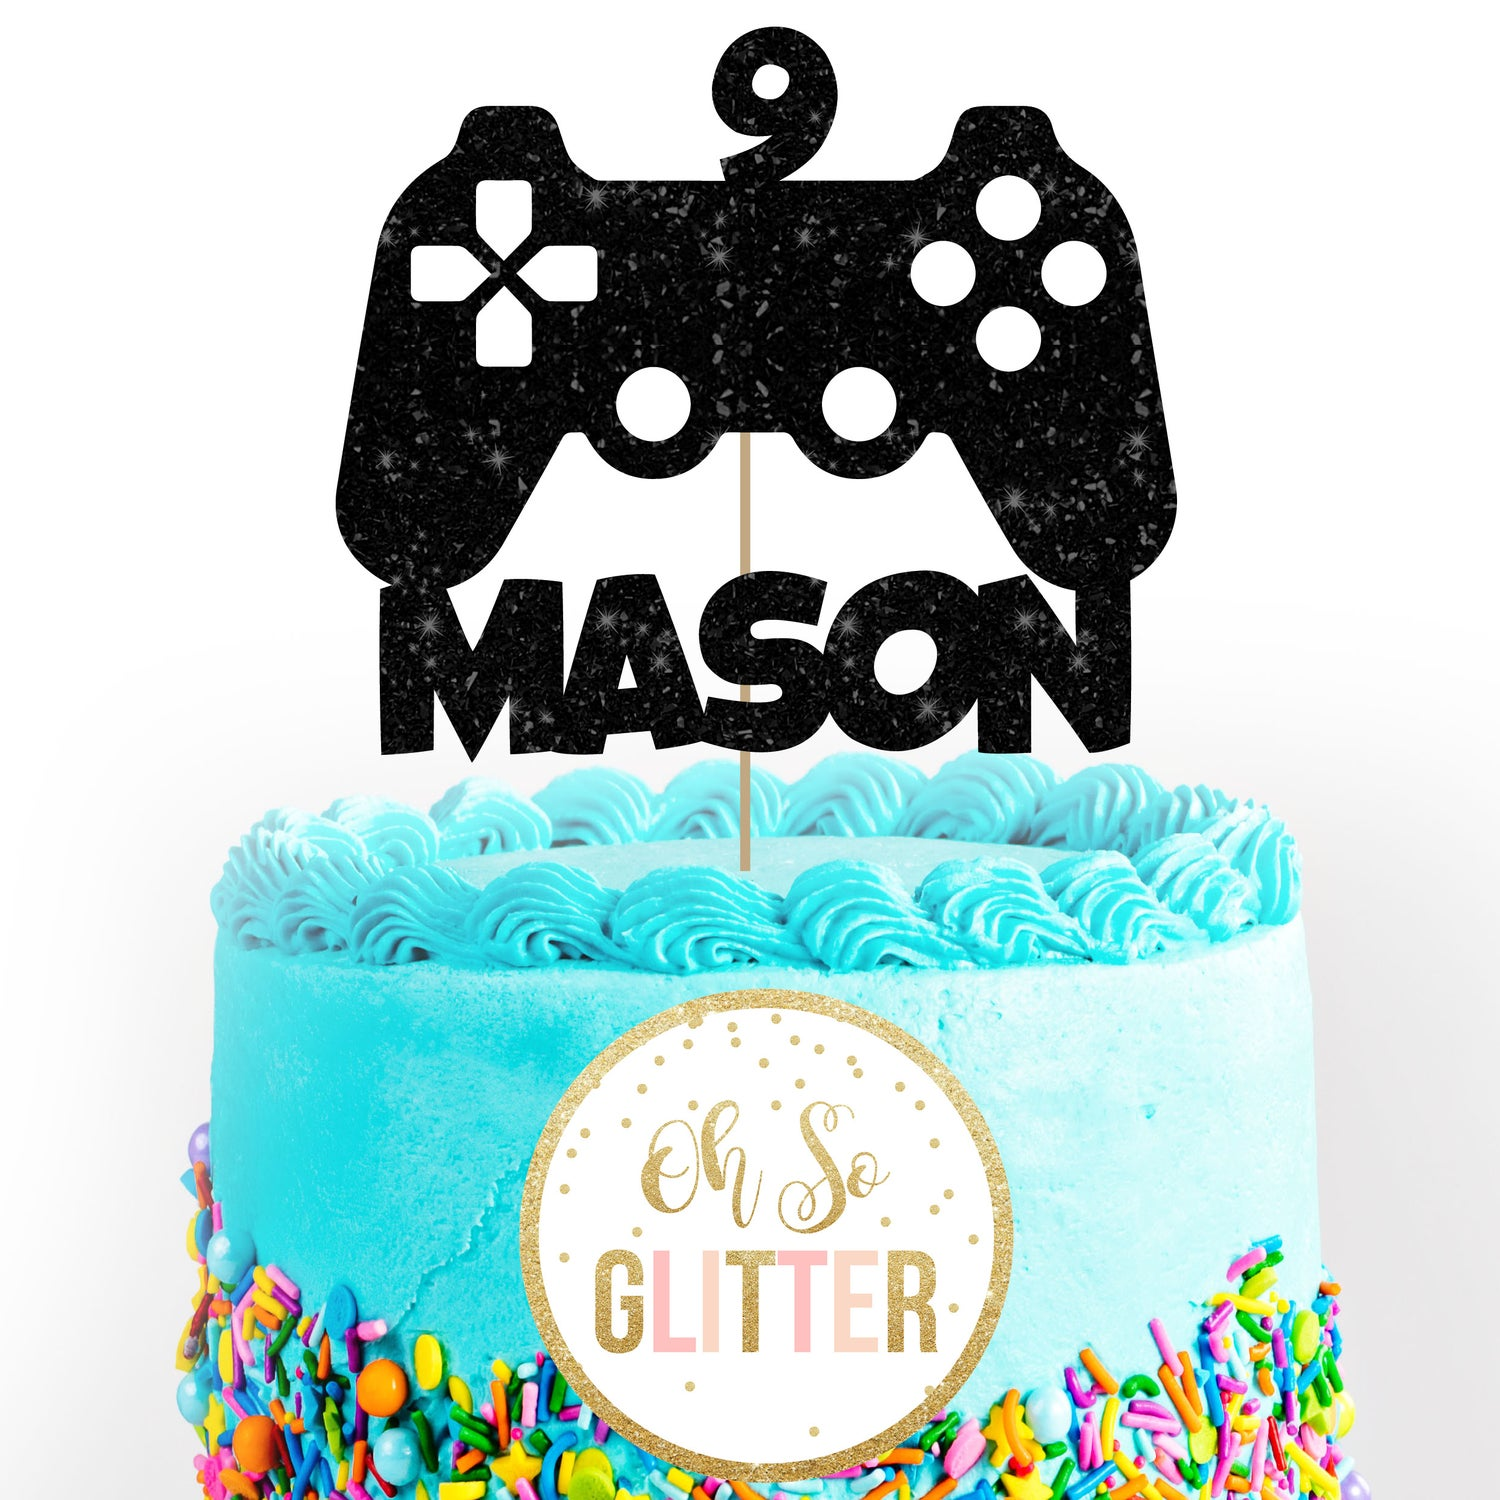 Magnificent Ps4 Playstation Gamer Cake Topper Oh So Glitter Funny Birthday Cards Online Alyptdamsfinfo